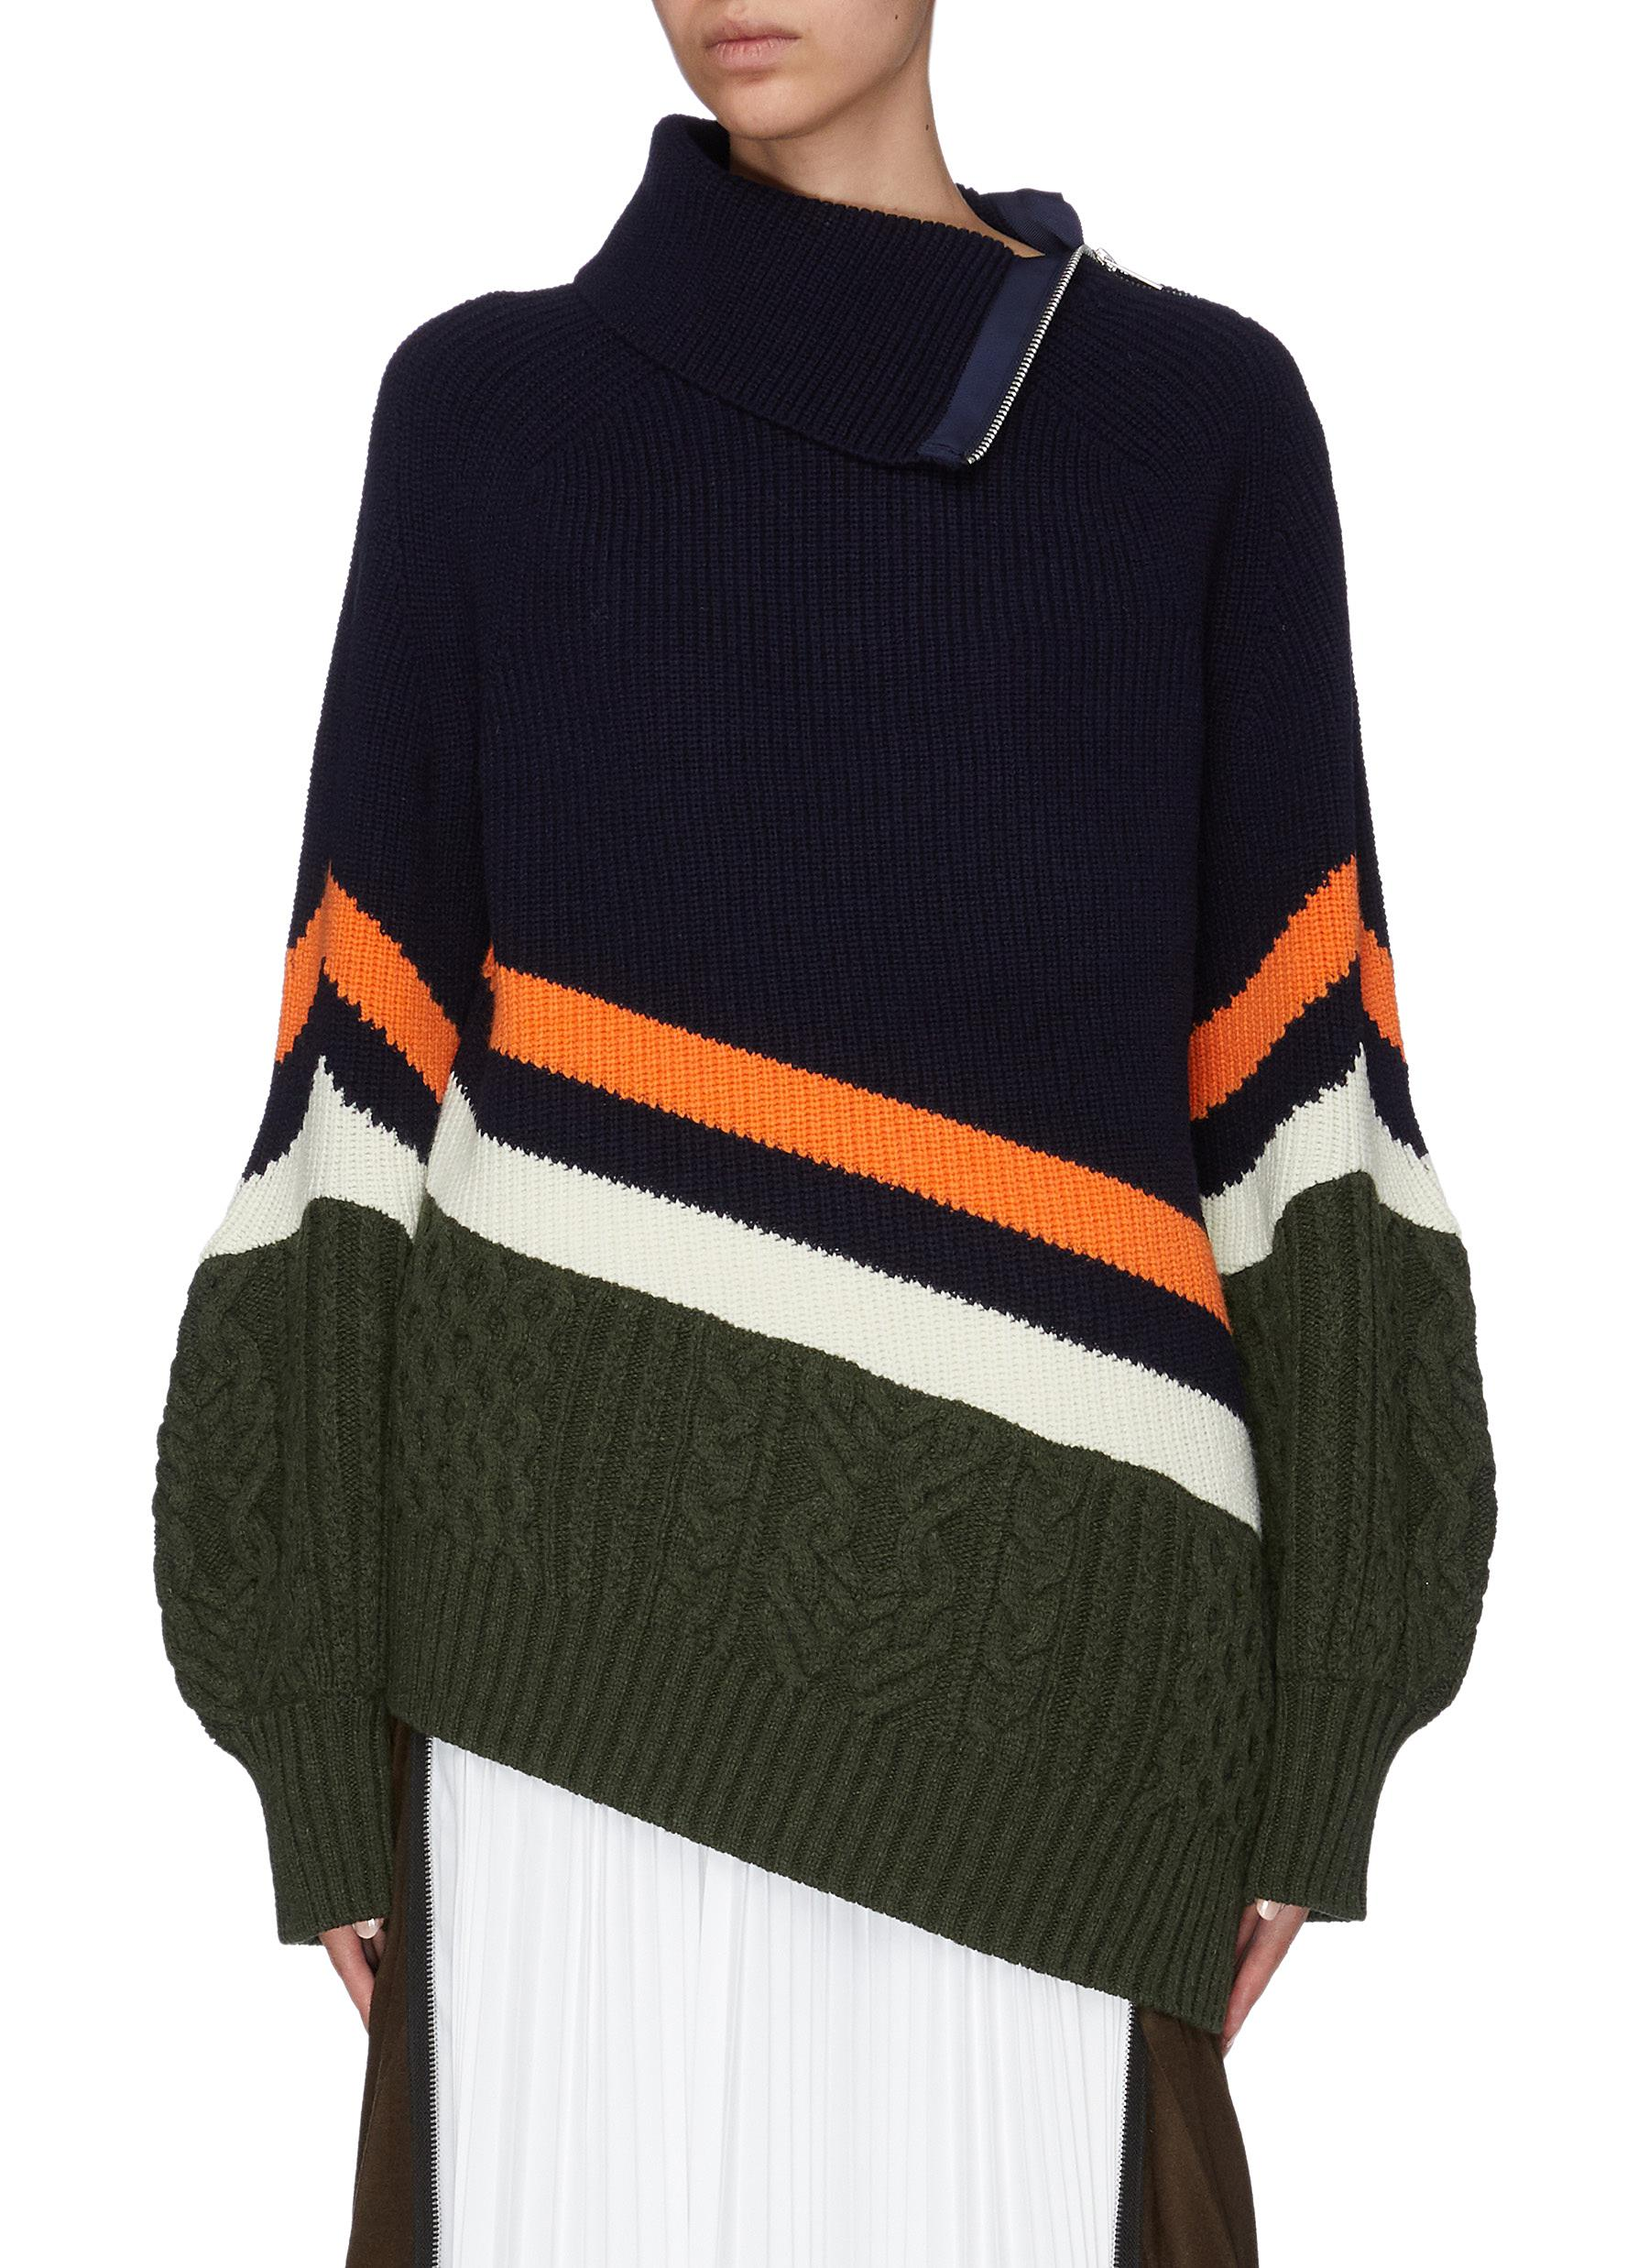 Colourblock mix knit puff sleeve turtleneck sweater by Sacai